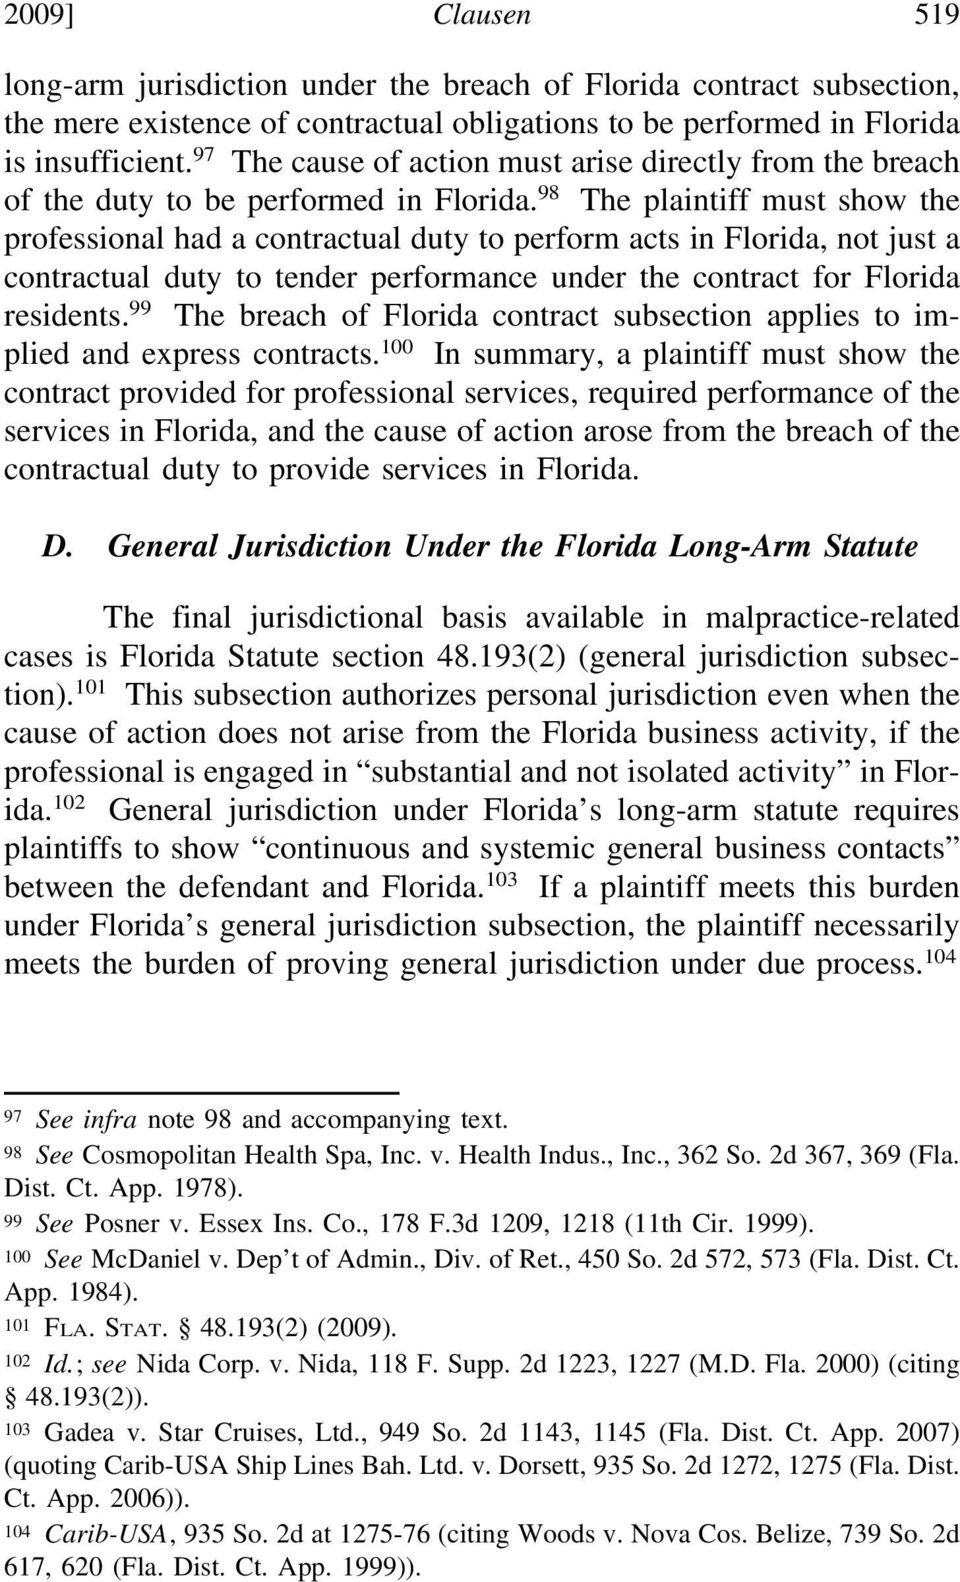 98 The plaintiff must show the professional had a contractual duty to perform acts in Florida, not just a contractual duty to tender performance under the contract for Florida residents.